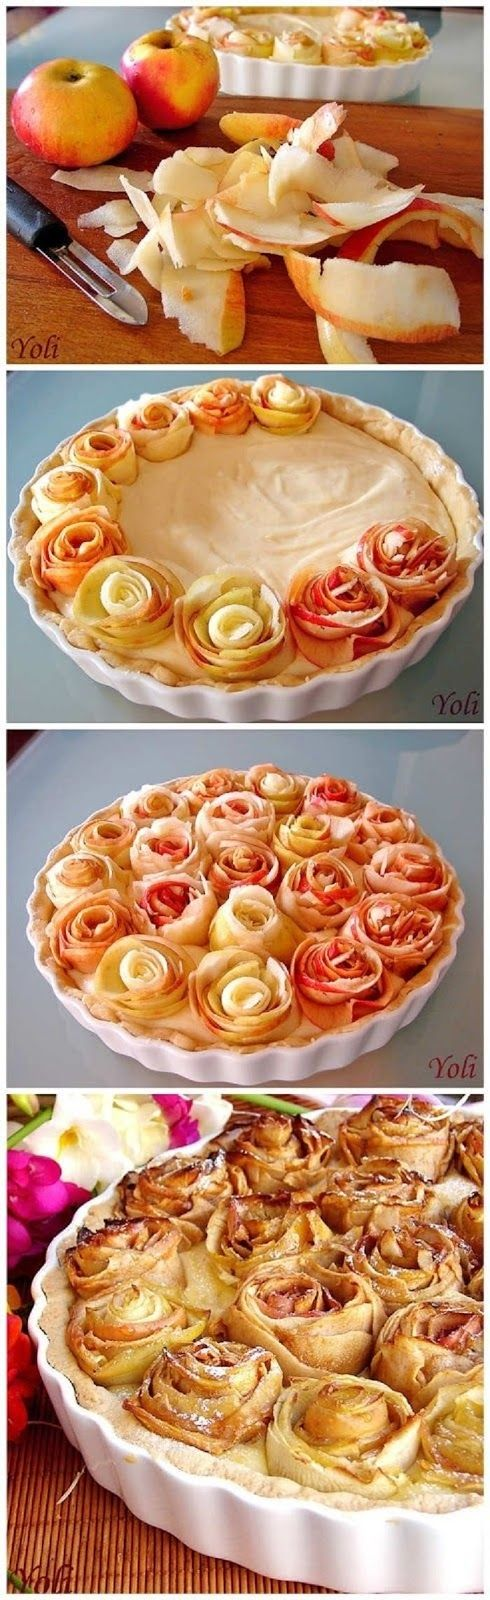 Flower Apple Pie, gorgeous!